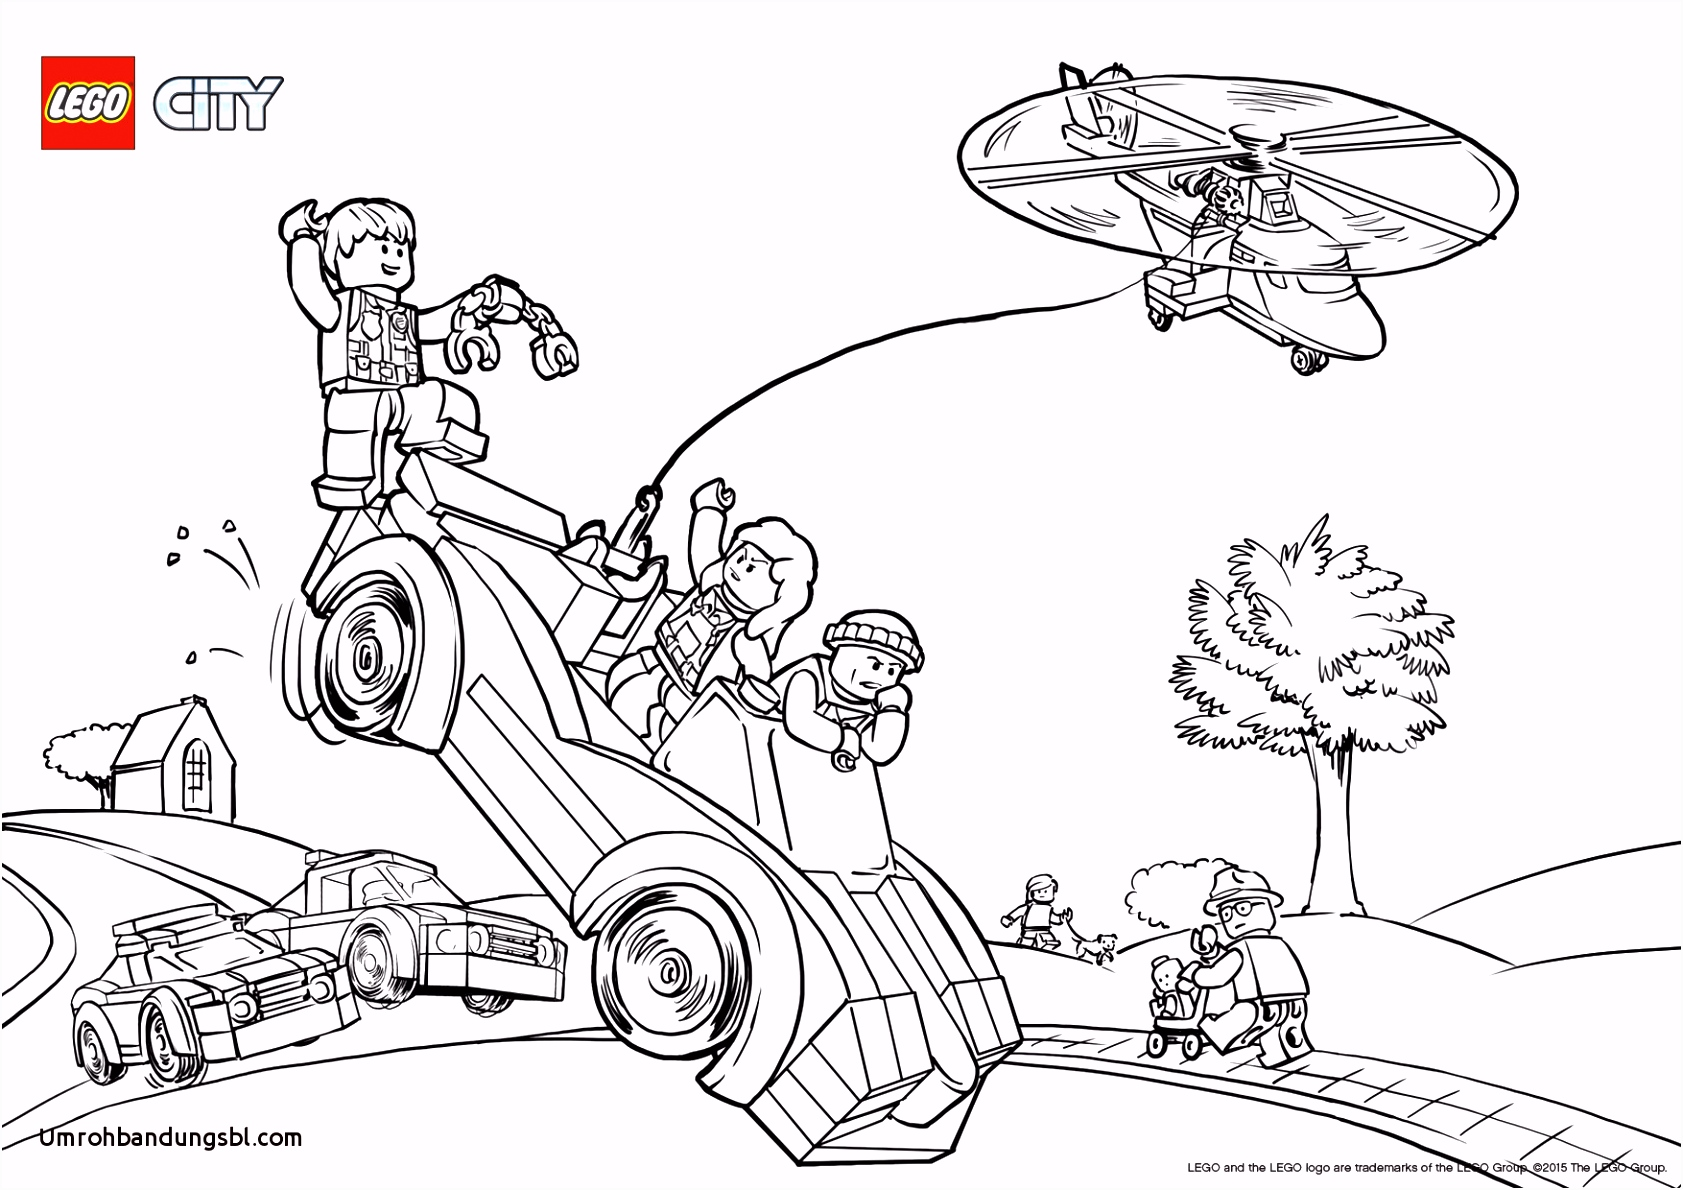 Inspirational Lego Hobbit Coloring Pages umrohbandungsbl